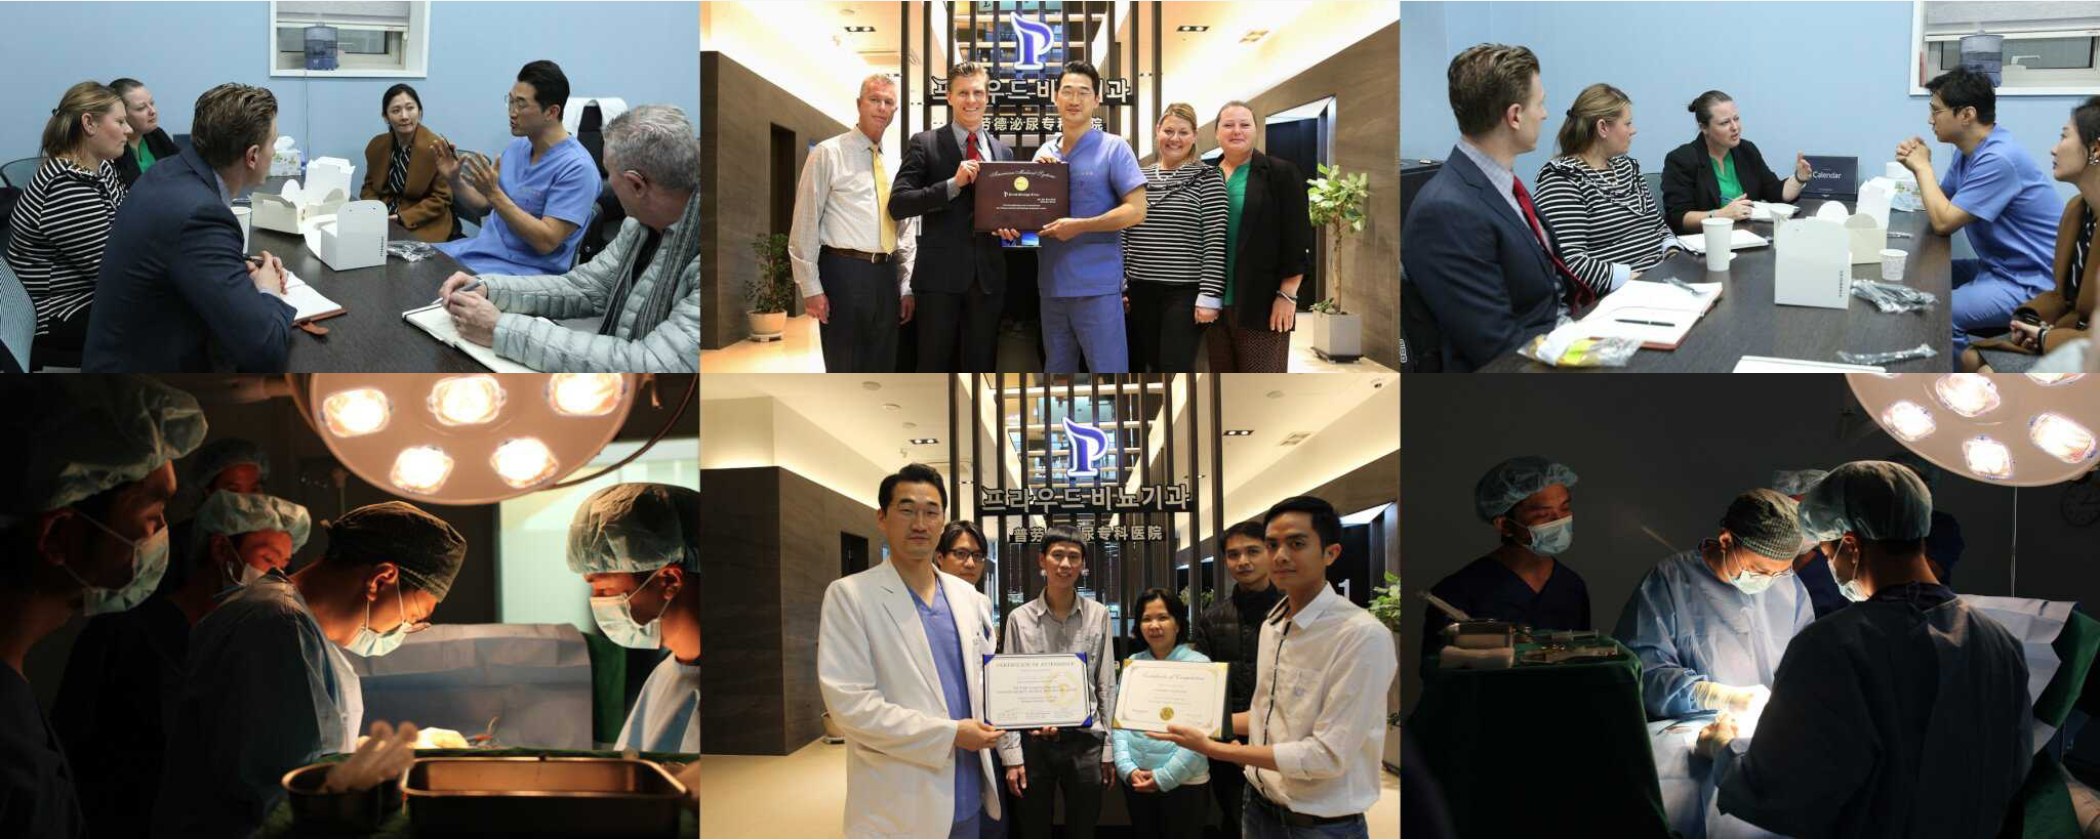 foreign doctors visiting proud urology clinic facility